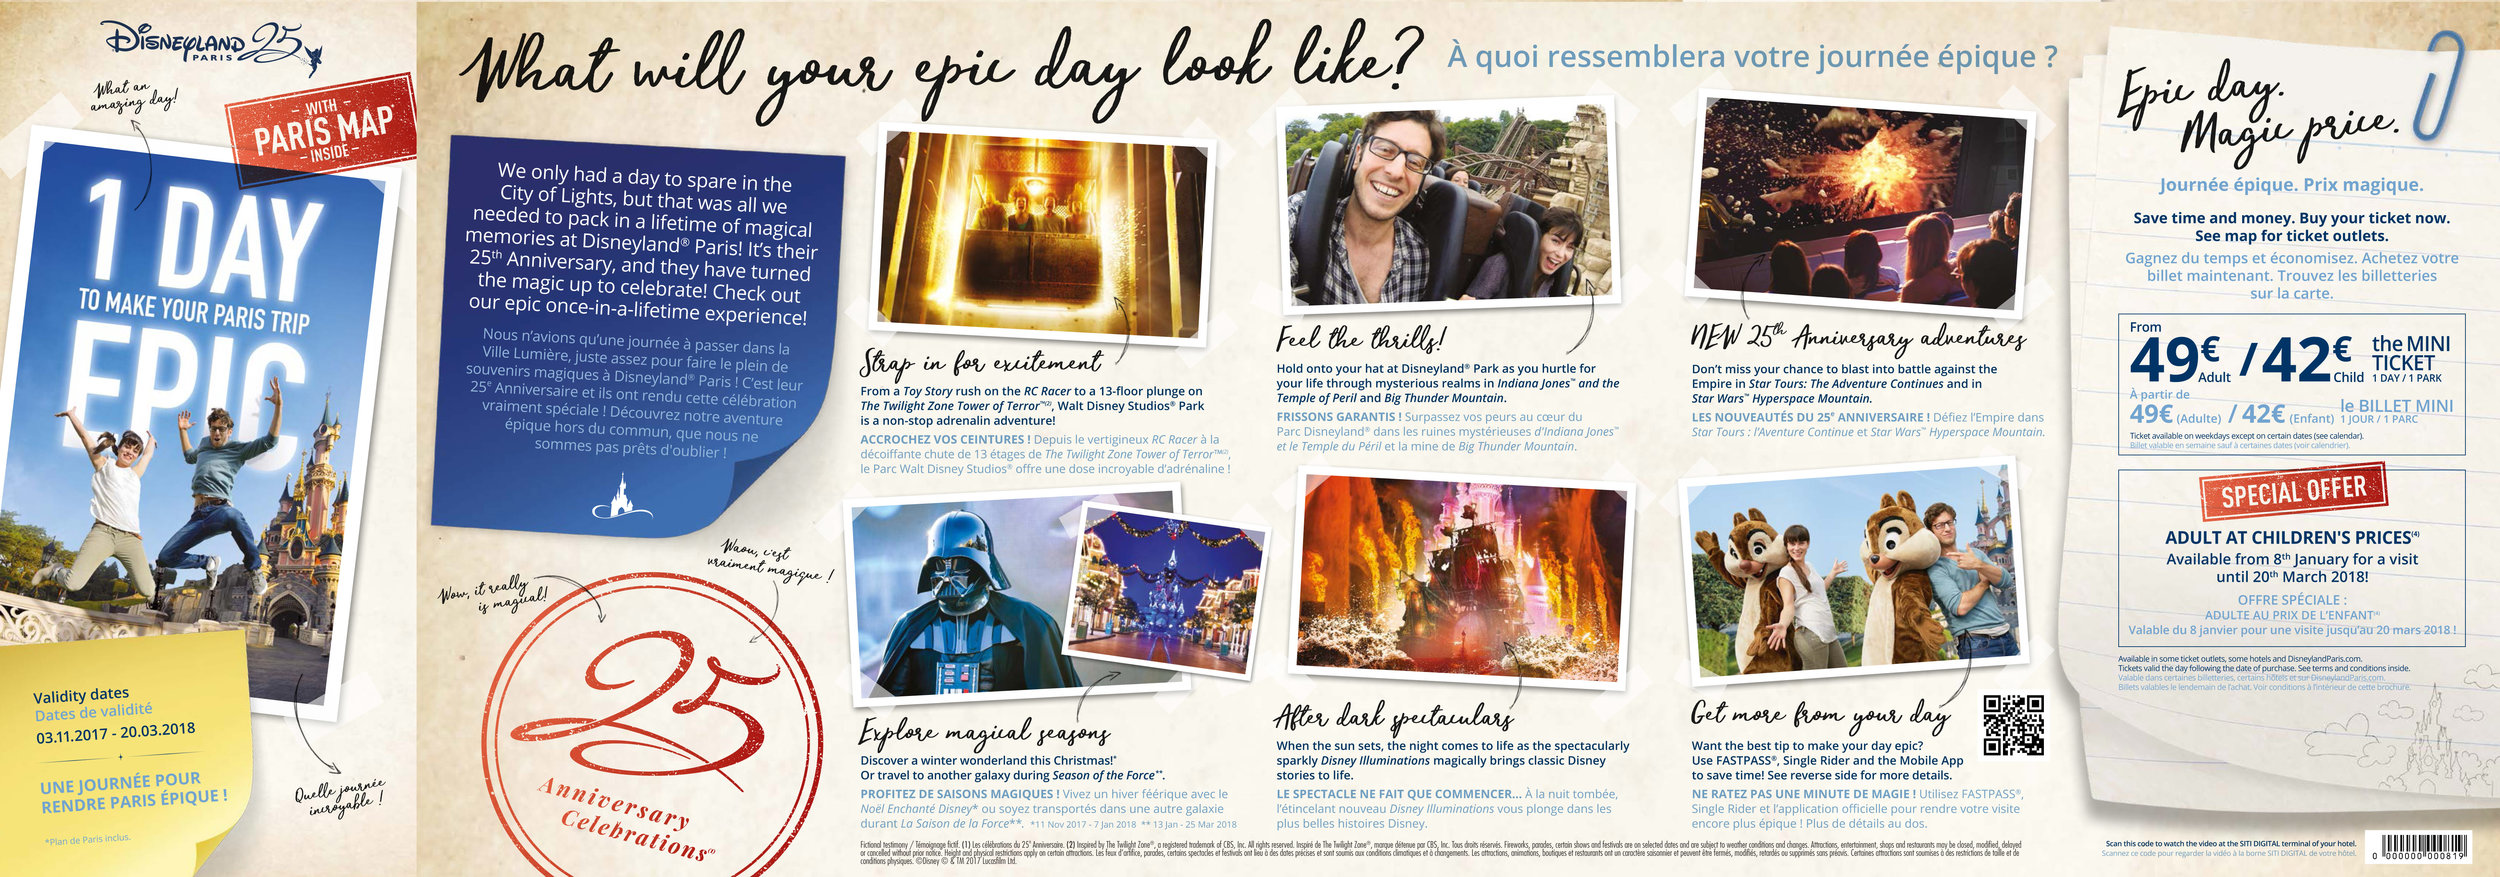 Disneyland Paris - brochure excerpt